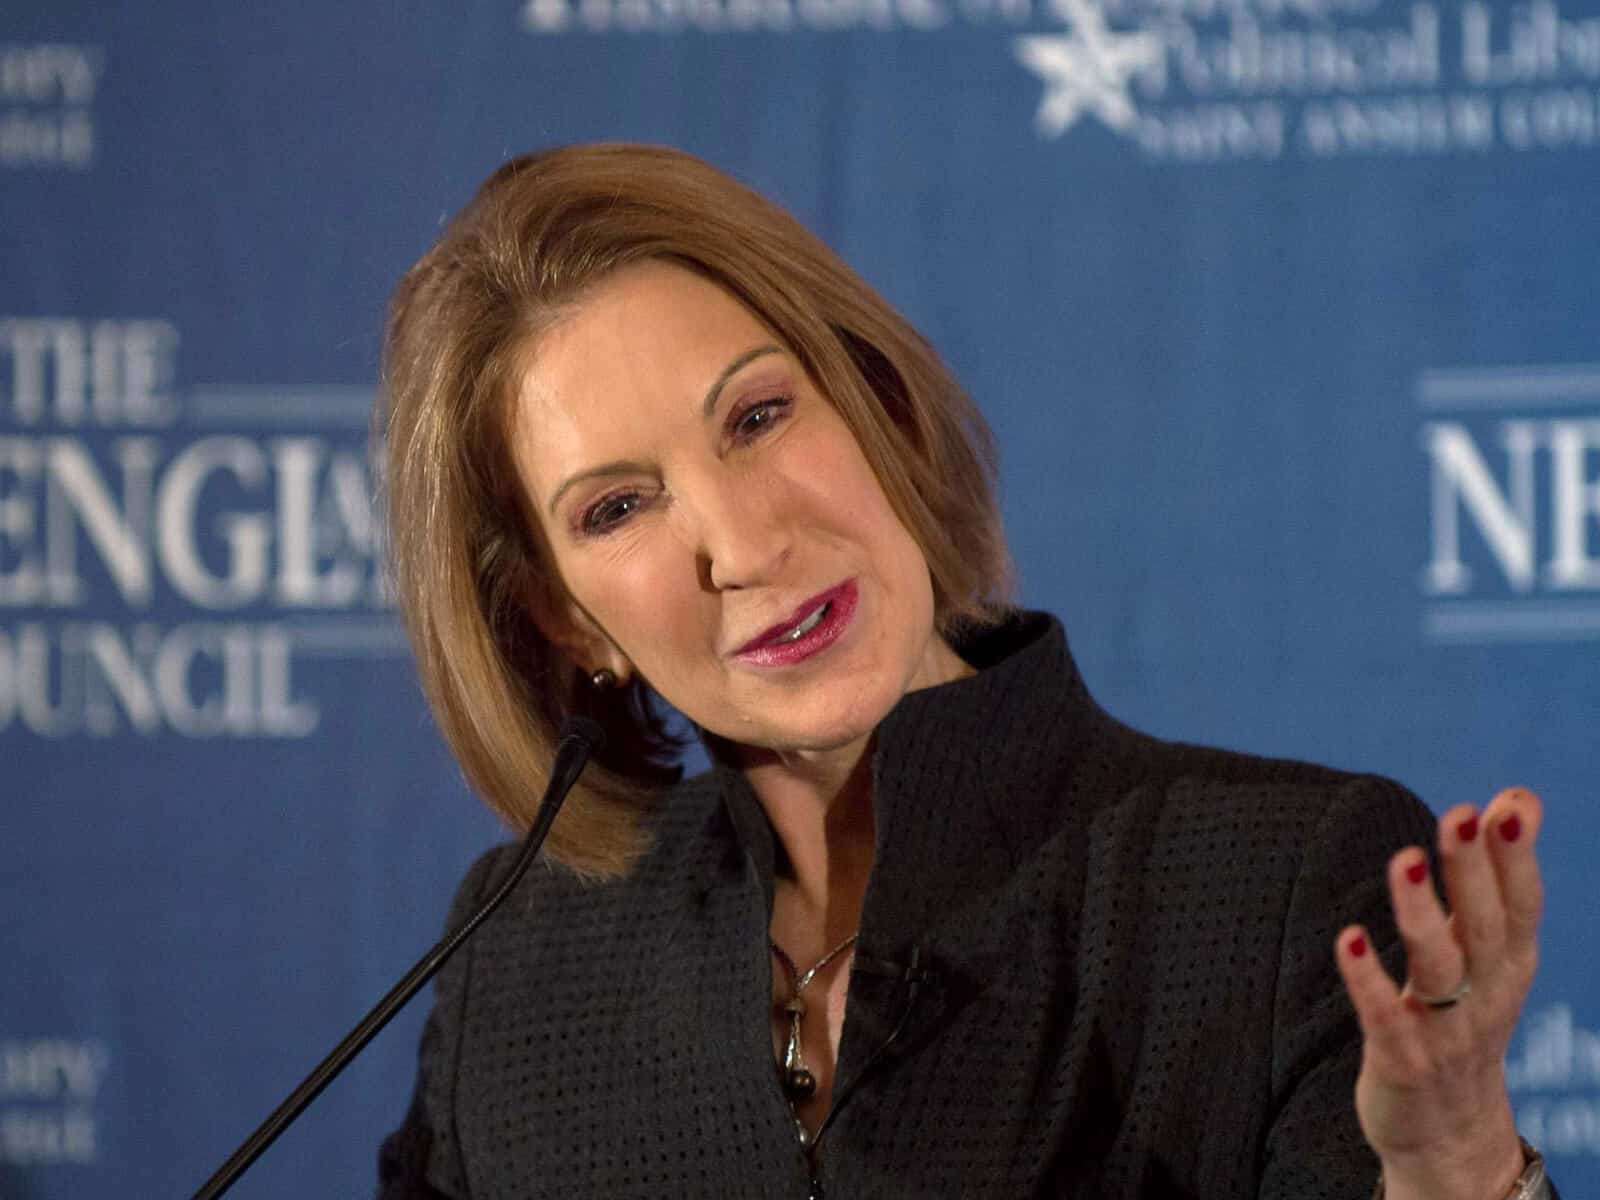 Carly Fiorina Speaks About Drug Abuse - Freedom From Addiction